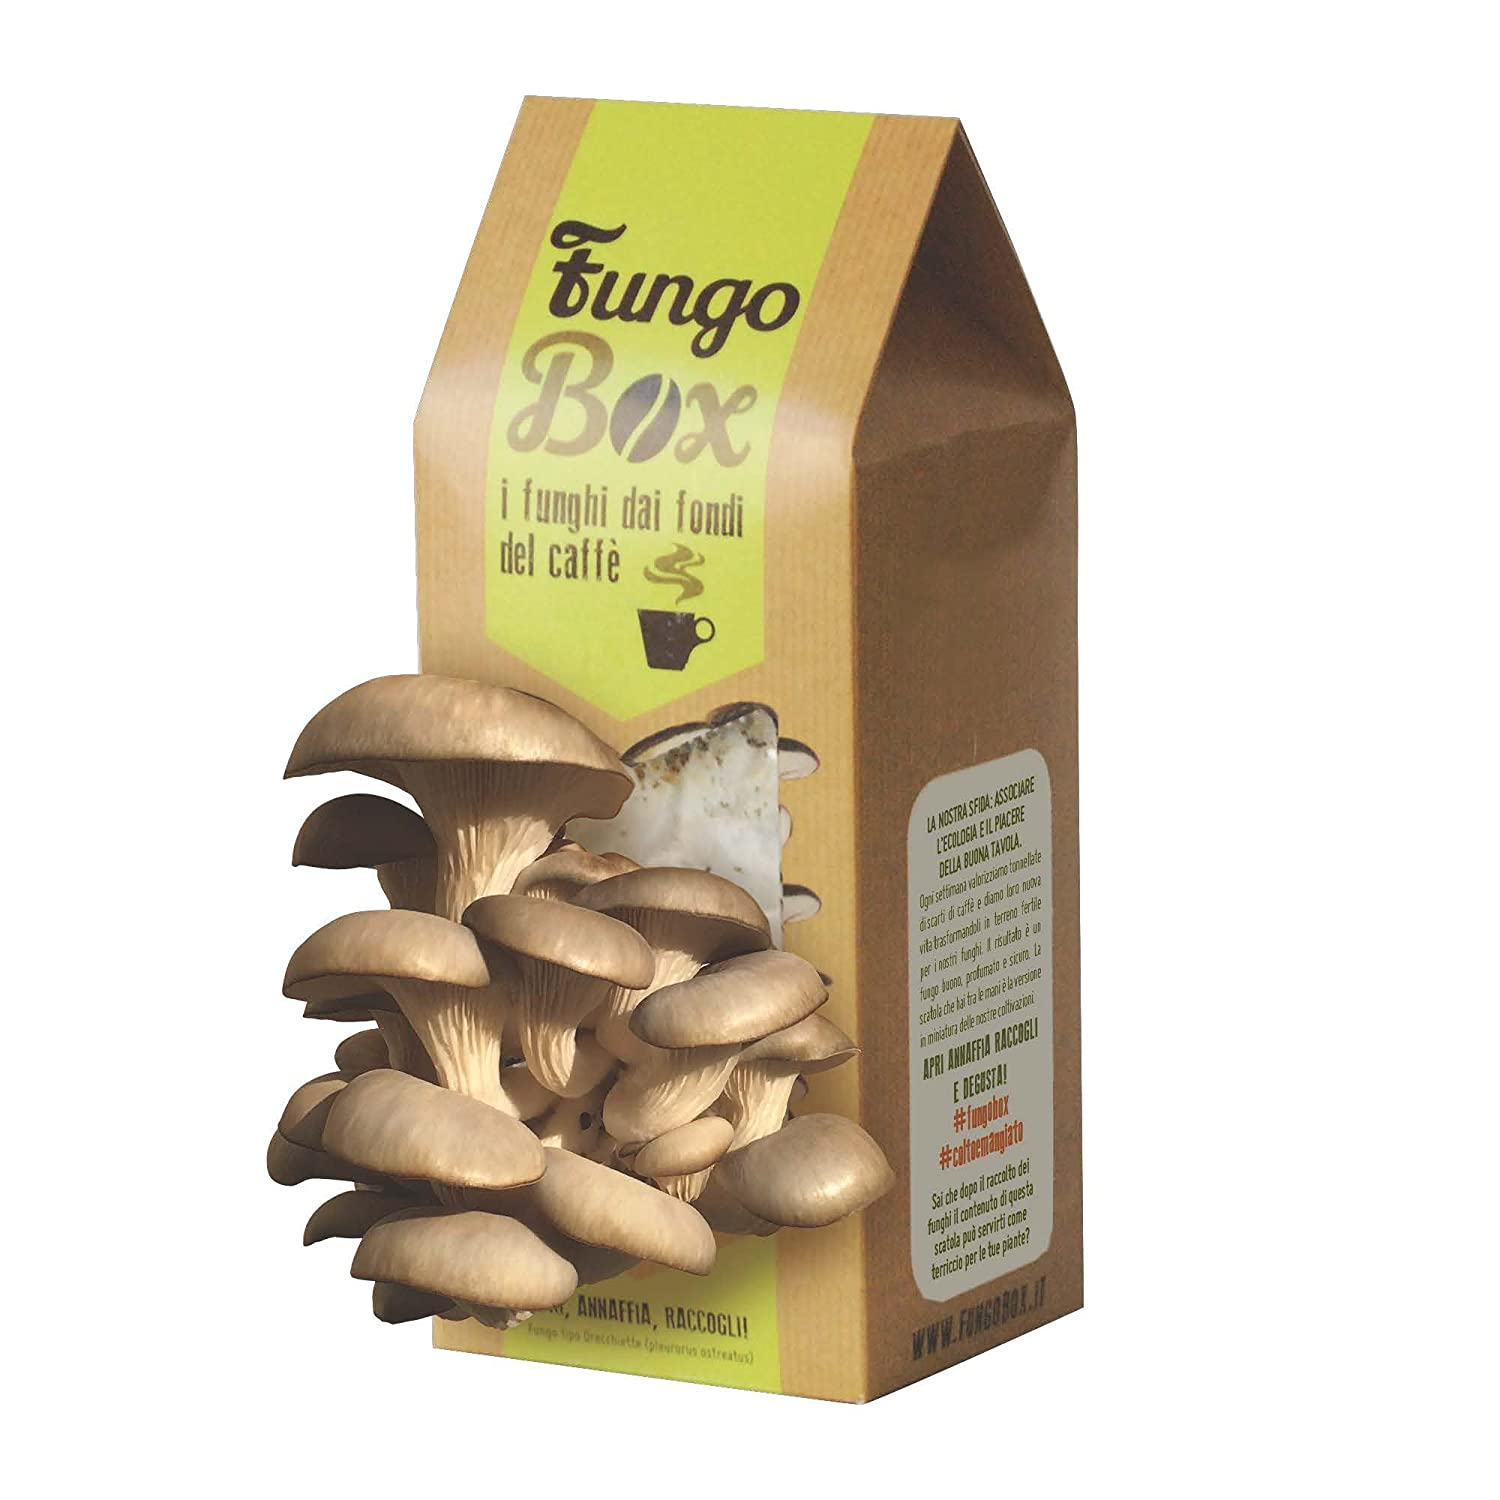 FungoBox: Home Kit with edible mushrooms (Oyster) and tokens by the funds of espresso-Ideal Gift Upcycle Italia